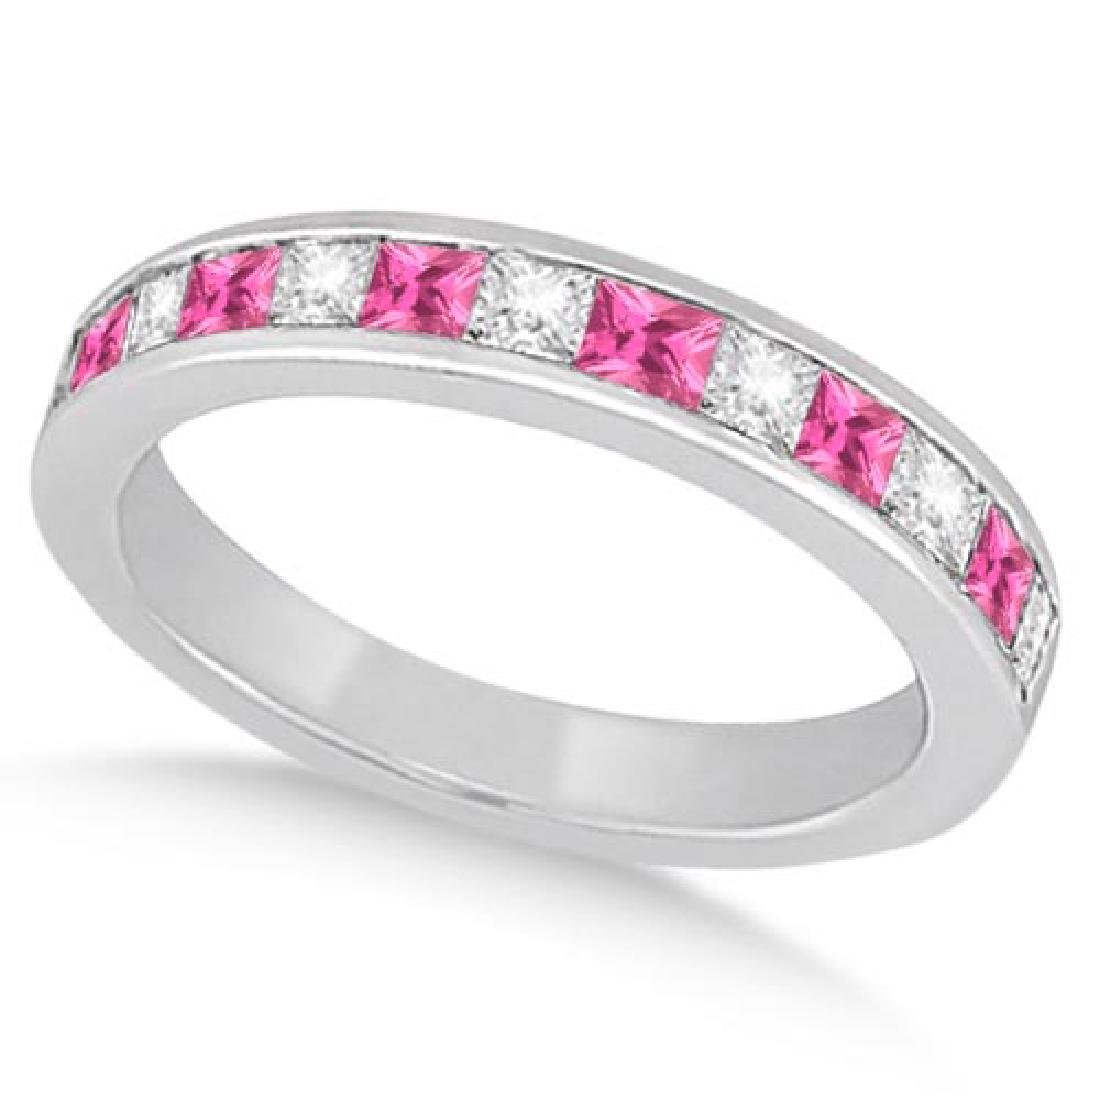 Channel Pink Sapphire and Diamond Wedding Ring 14k Whit